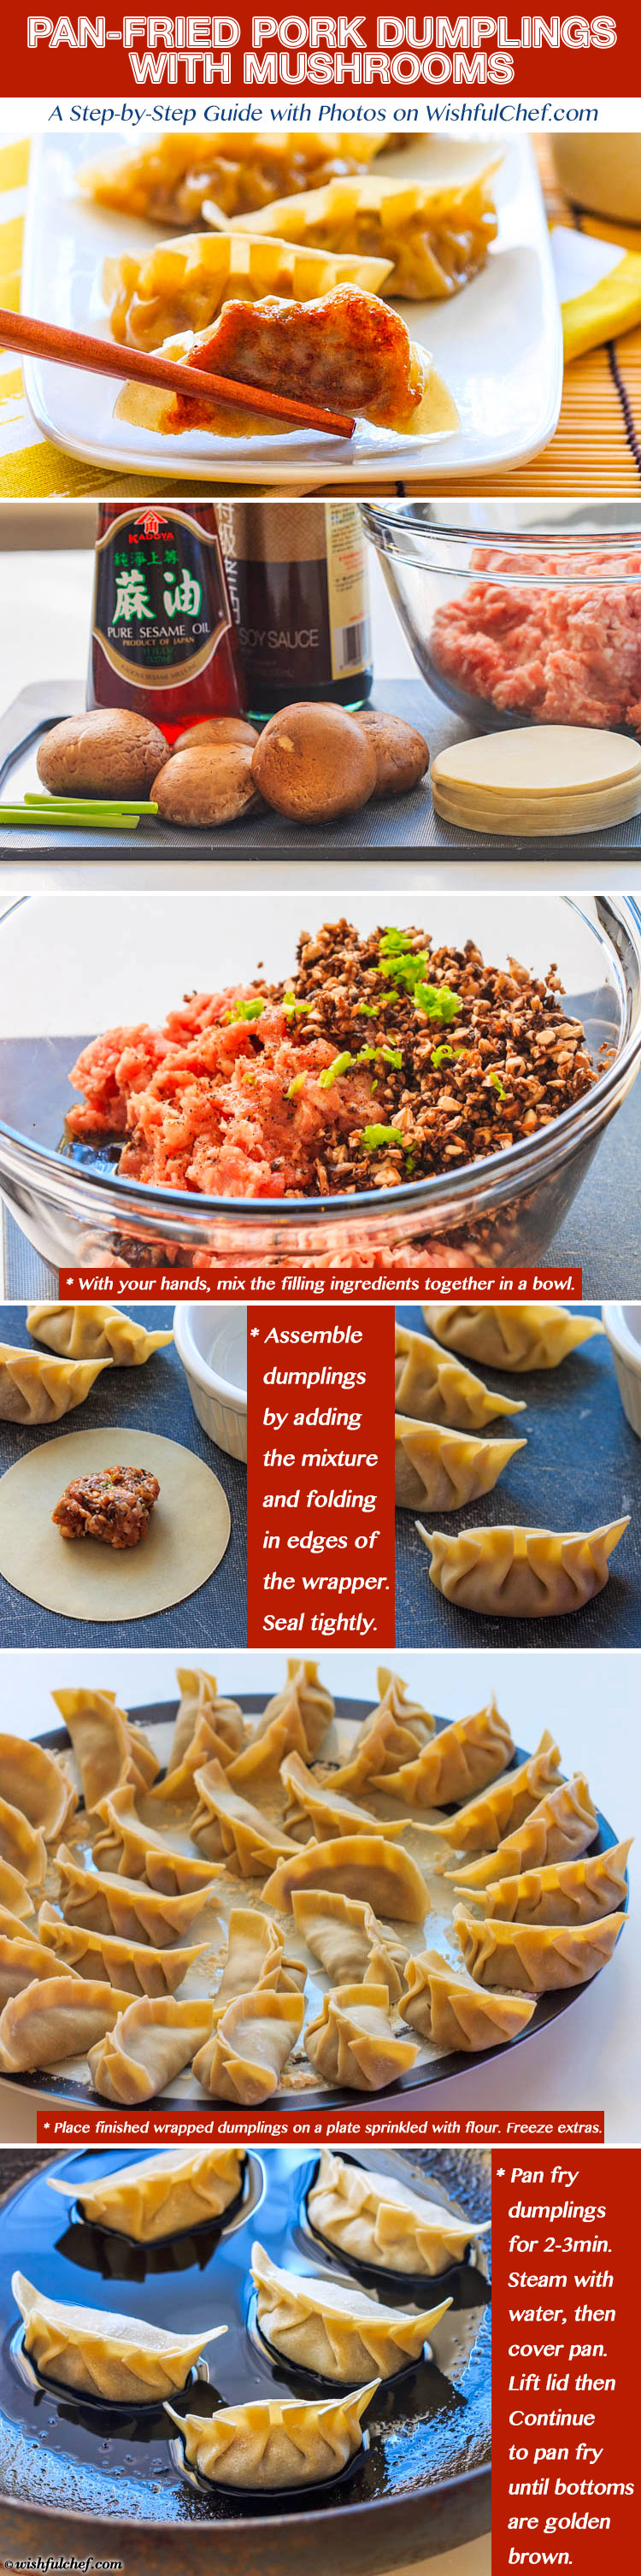 Pan Fried Pork #Dumplings with Mushrooms // wishfulchef.com #ChineseNewYear #Appetizer #Recipes